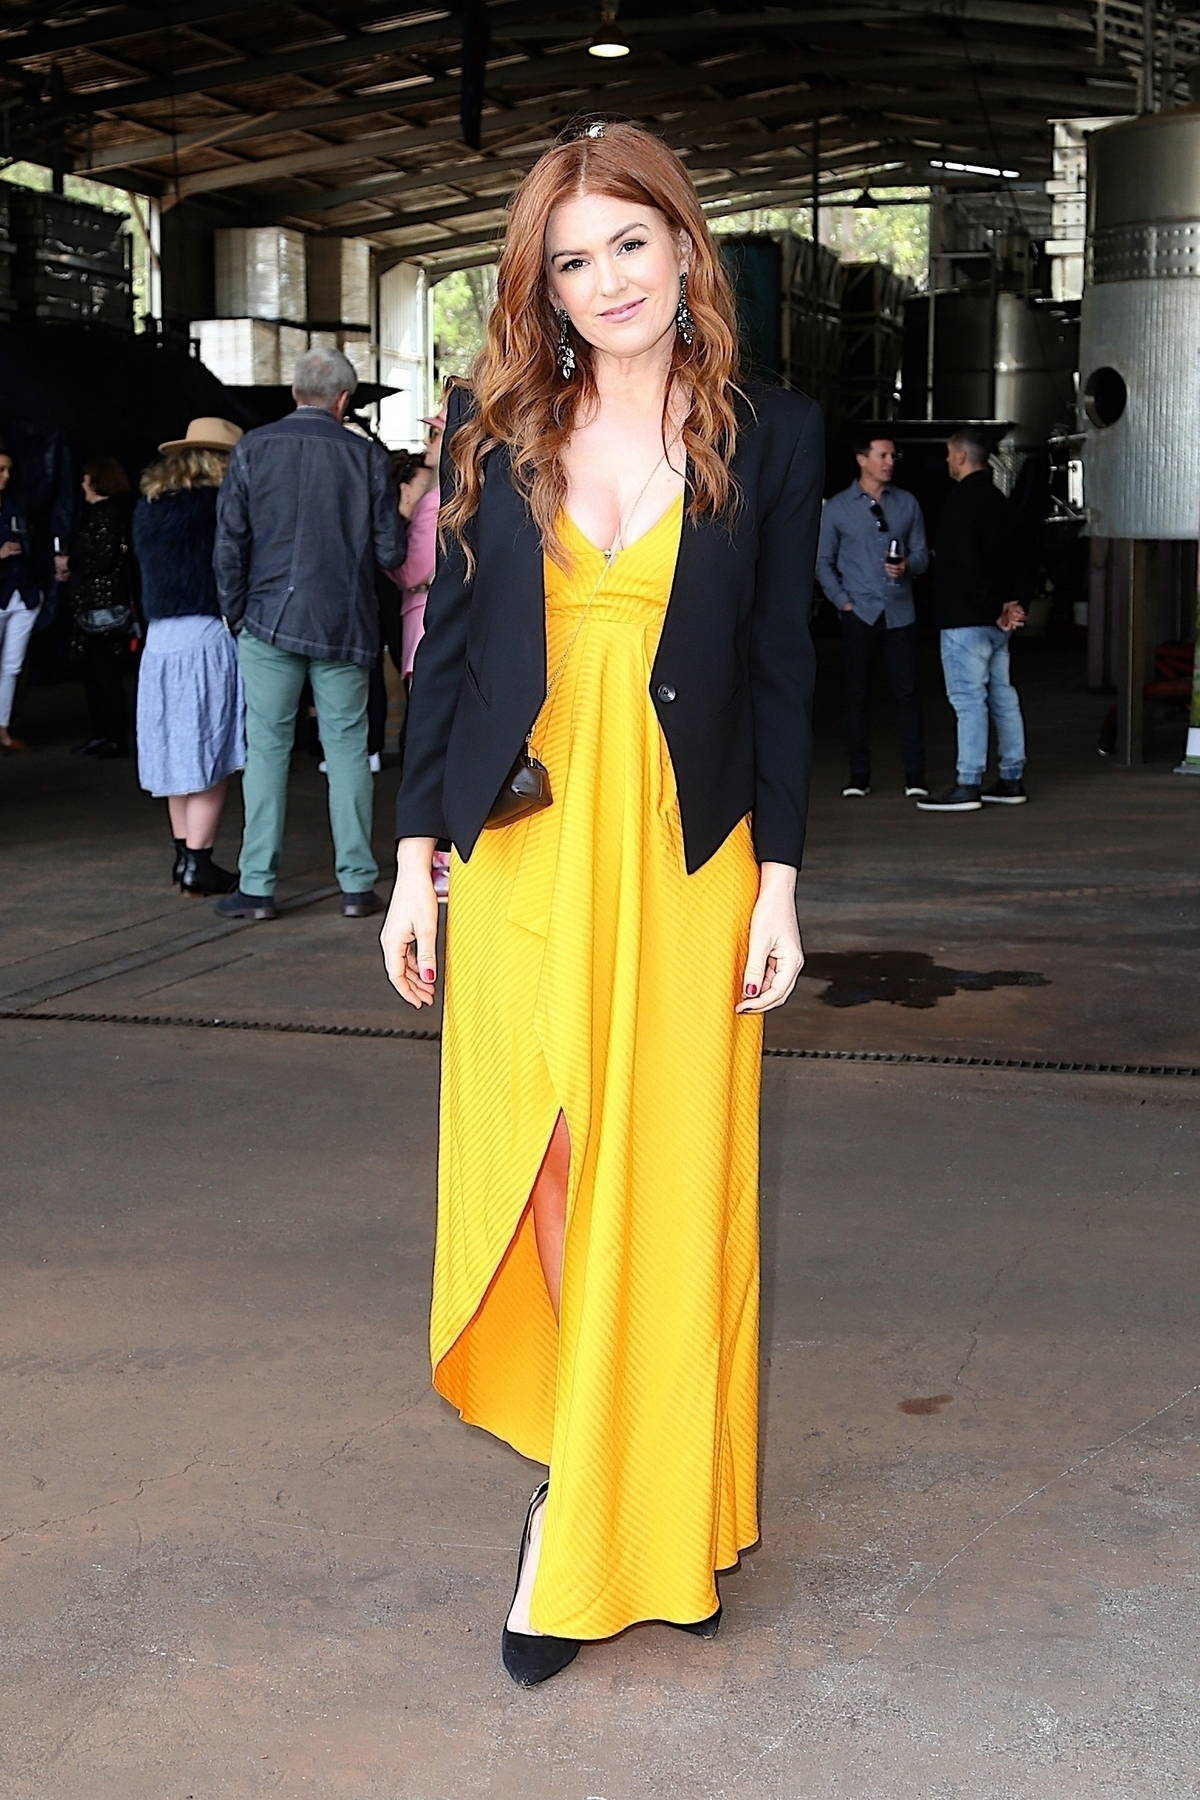 Isla Fisher attends the Forester Wine Tasting Event during the Cinefest Oz Film Festival in Yallingup Siding, Australia